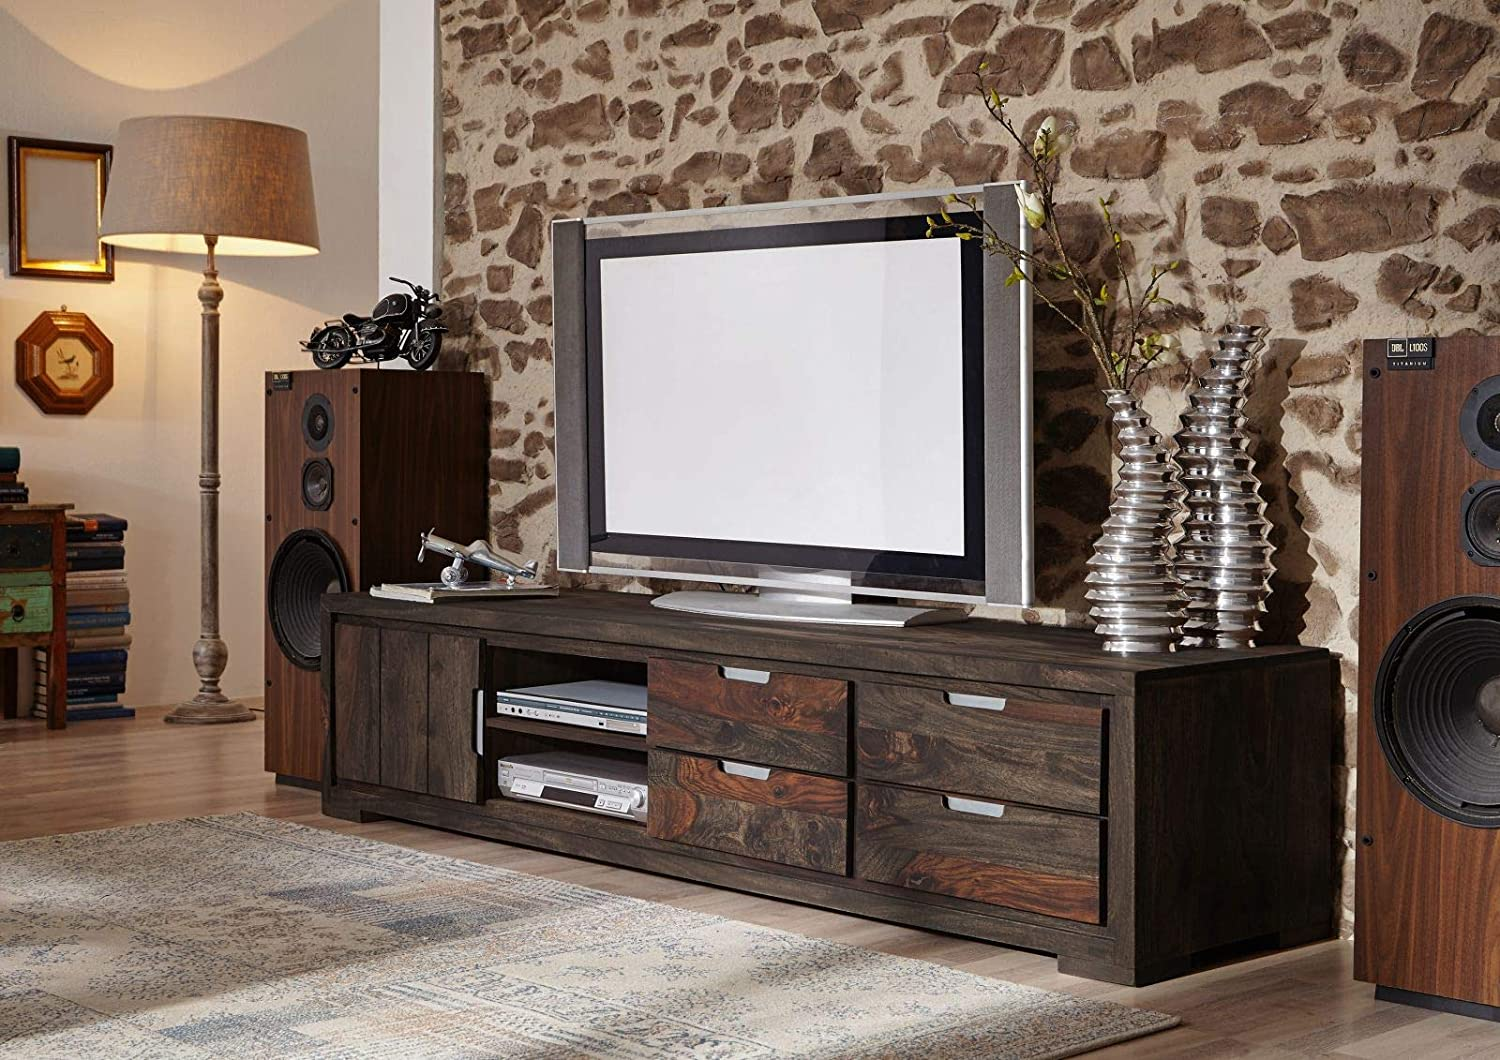 Alliy Wooden Entertainment TV Unit Living Room Furniture with Cabinet, 2 Shelf & 4 Drawers Storage Sheesham Wood, Warm Chestnut